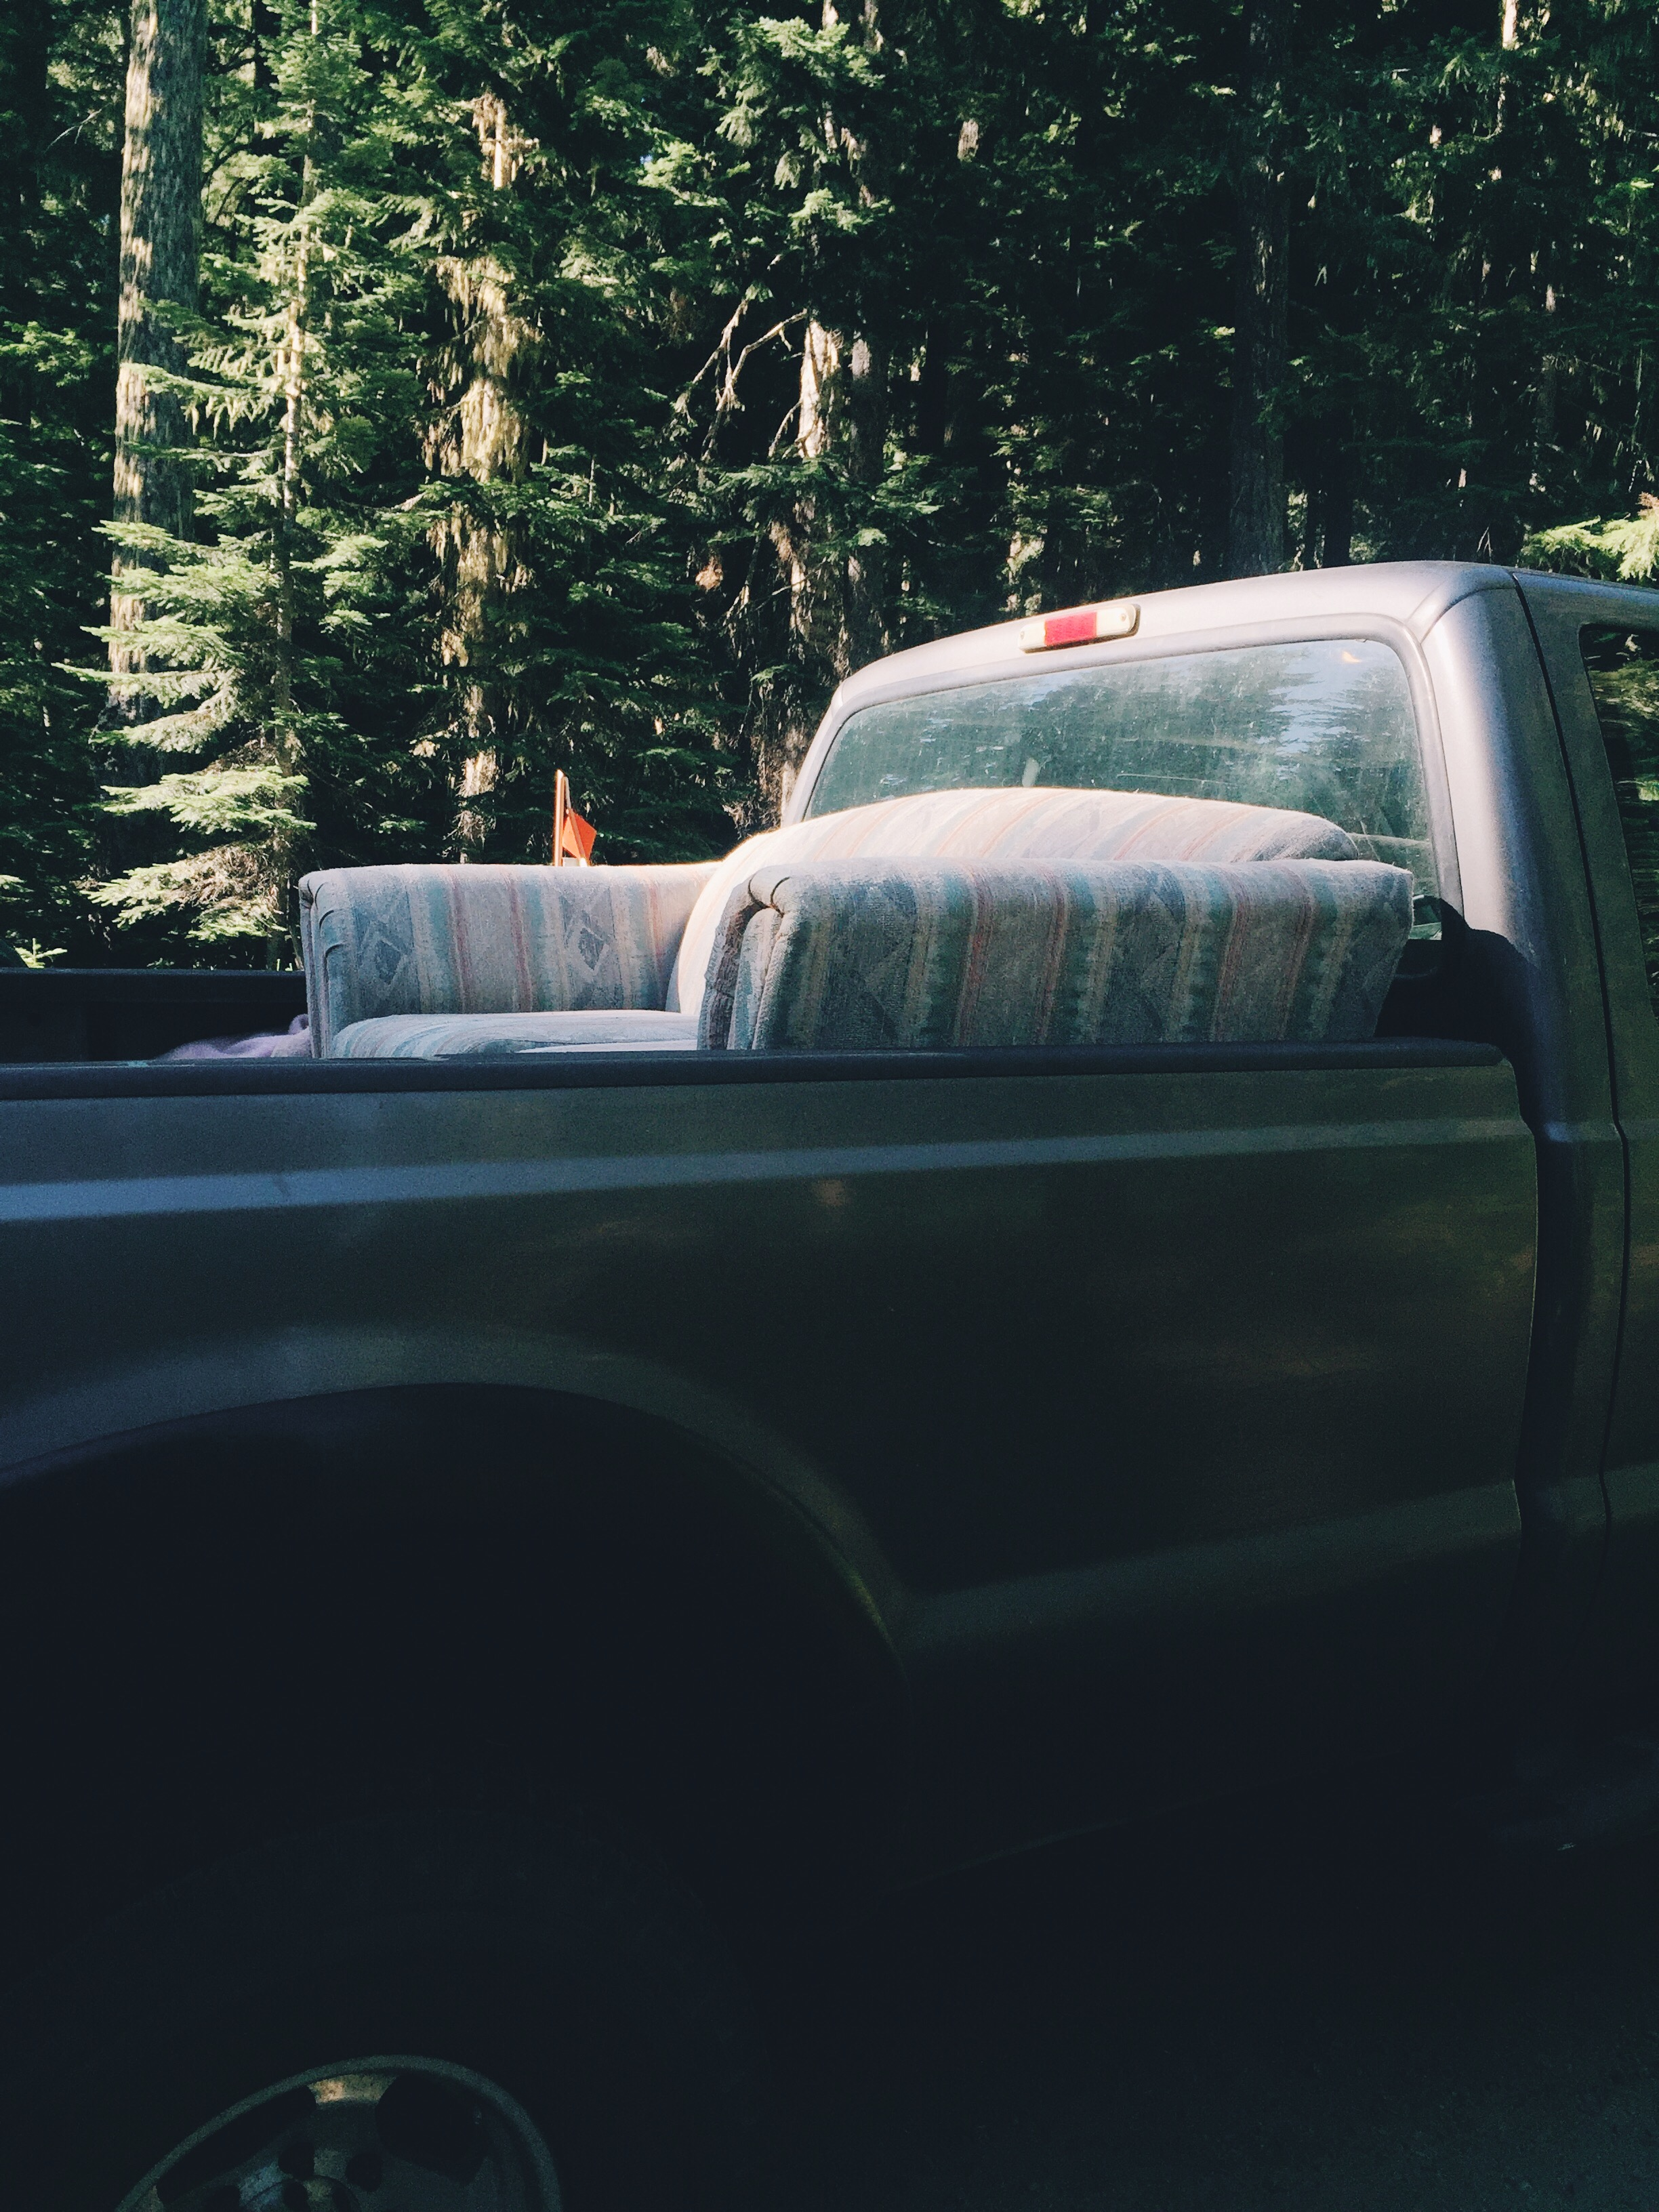 Gary's truck w the couch in the back